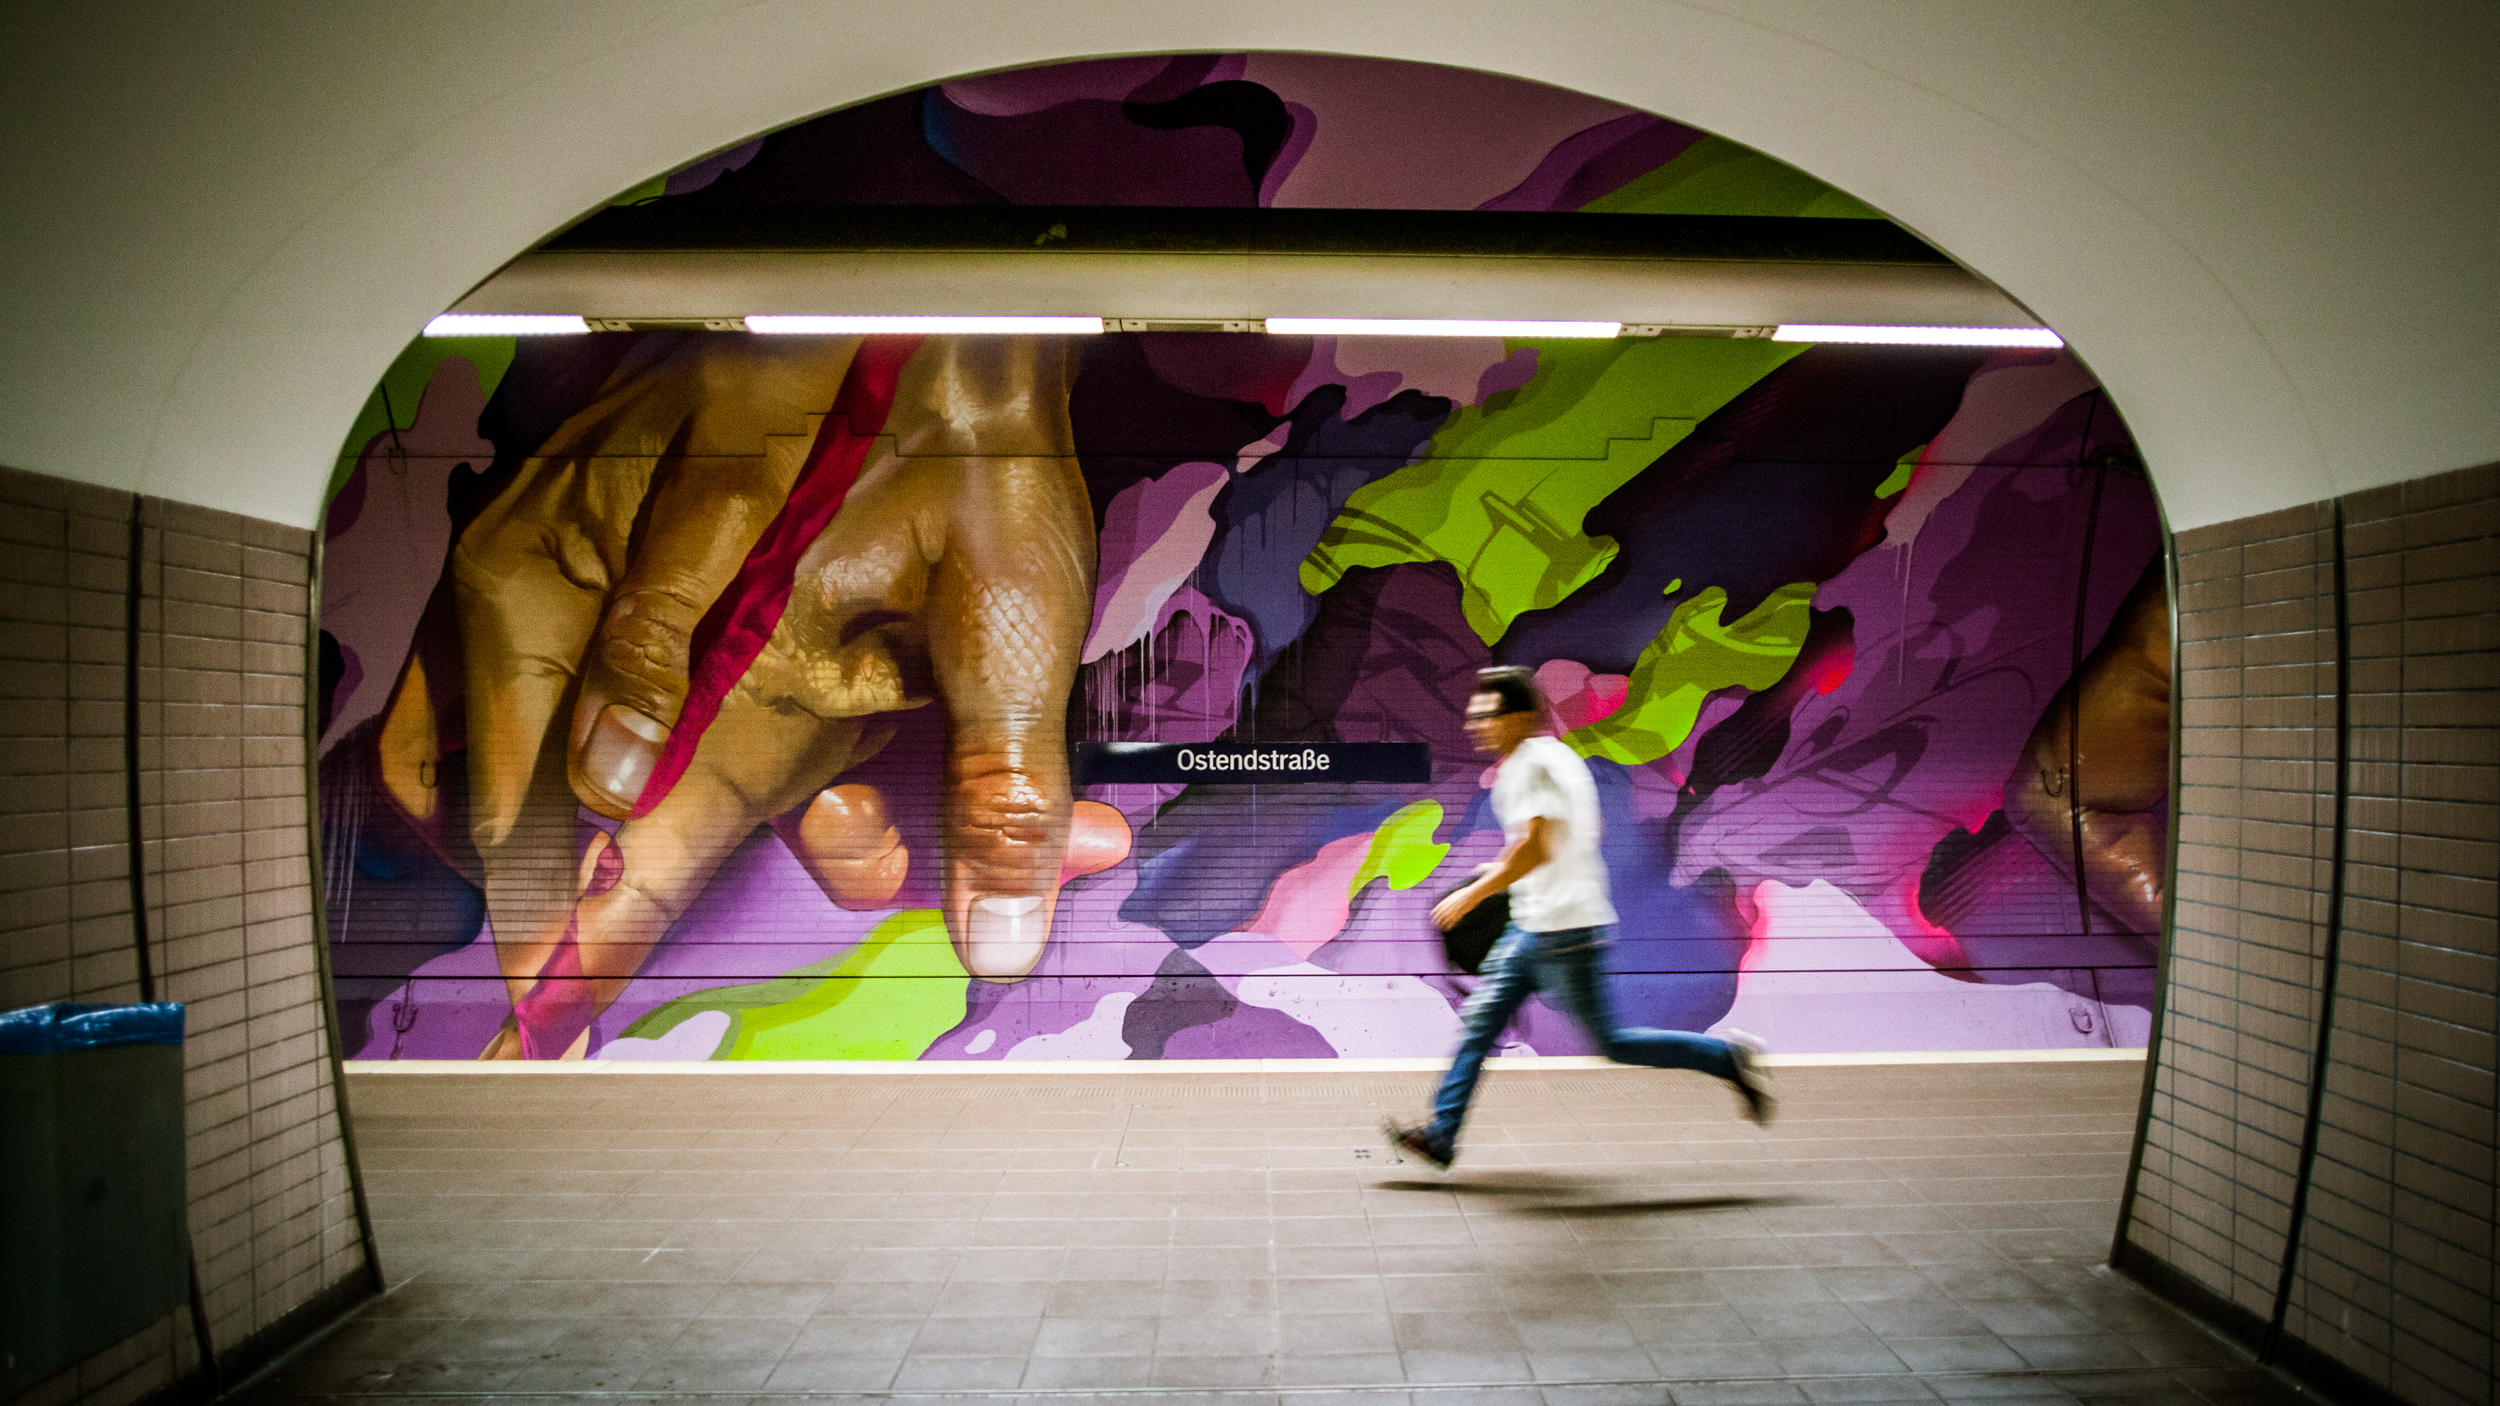 A work by Does - Ostendstrasse frankfurt germany tunnel 17